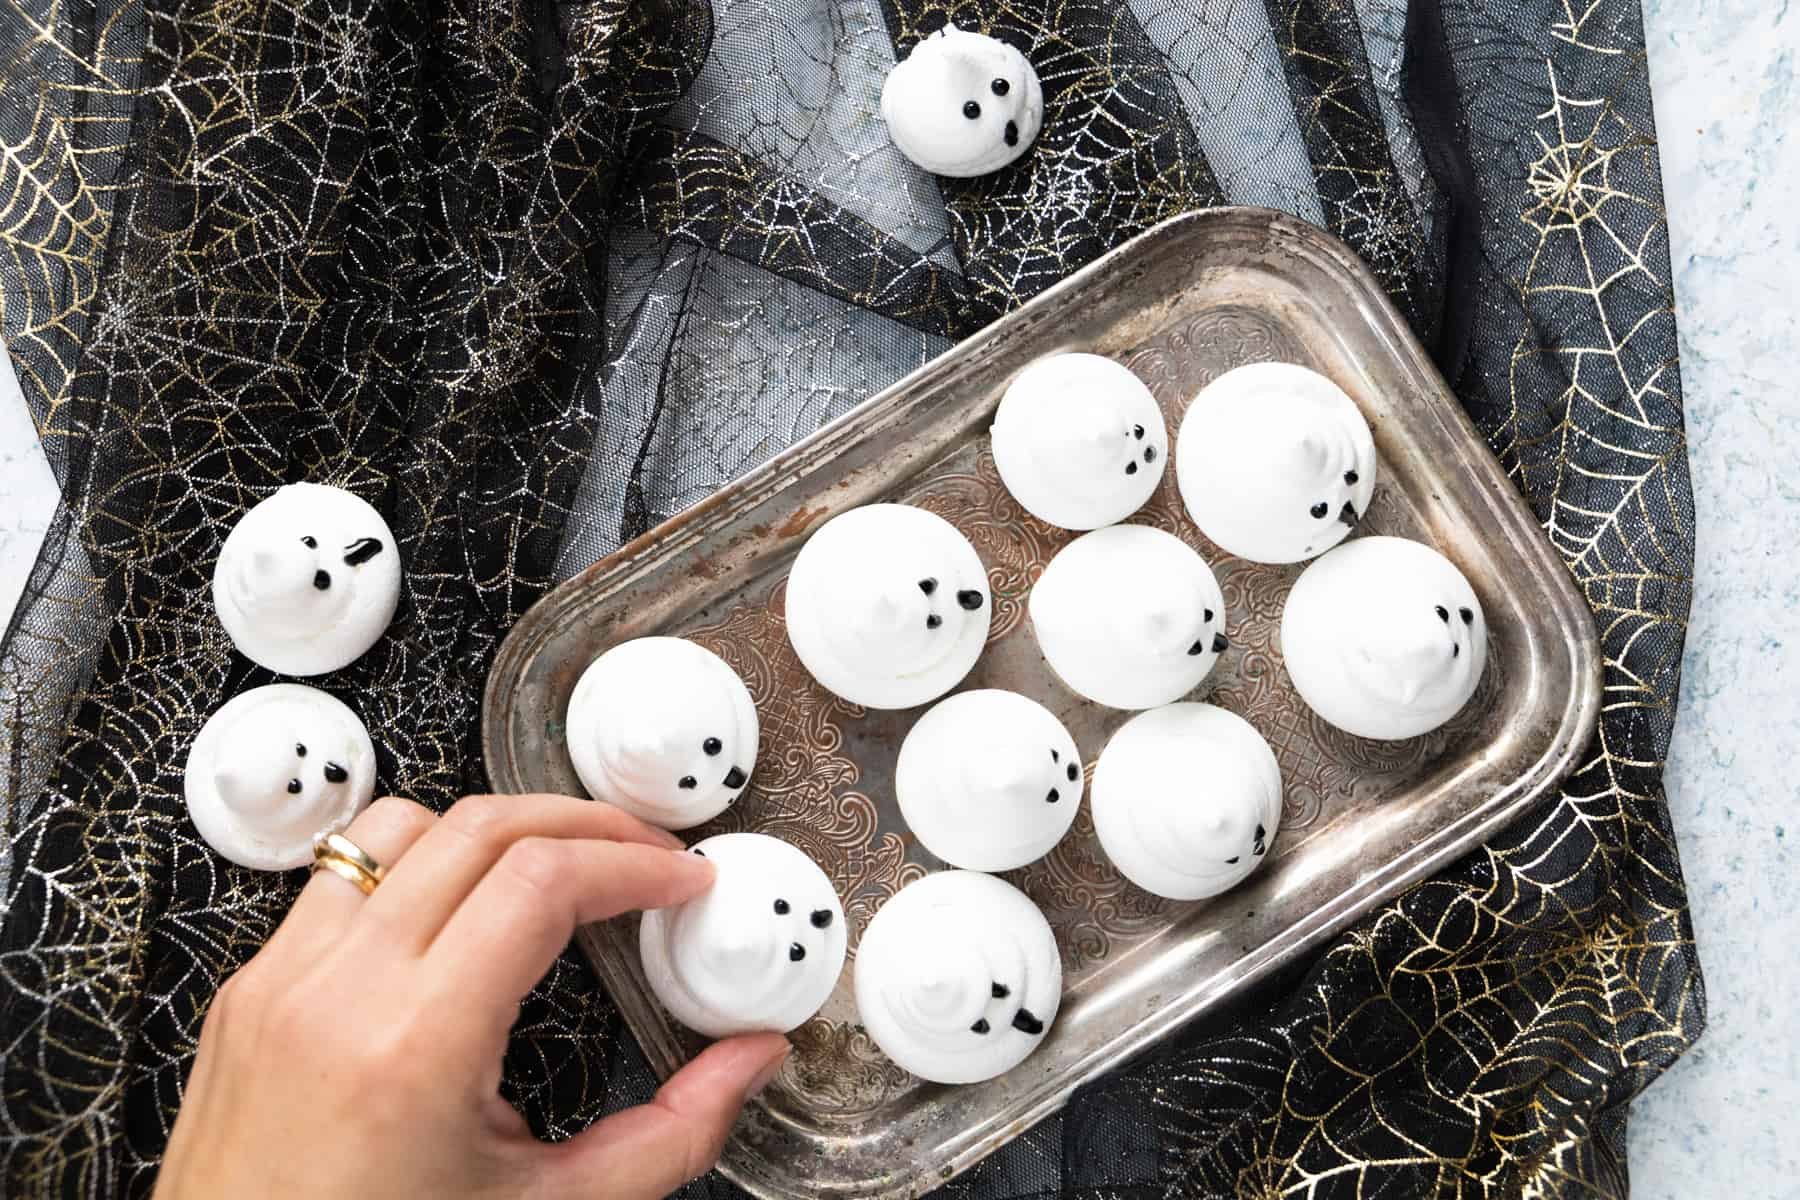 Overhead shot of Meringue Ghosts on a tray, with a hand going to pick one up.